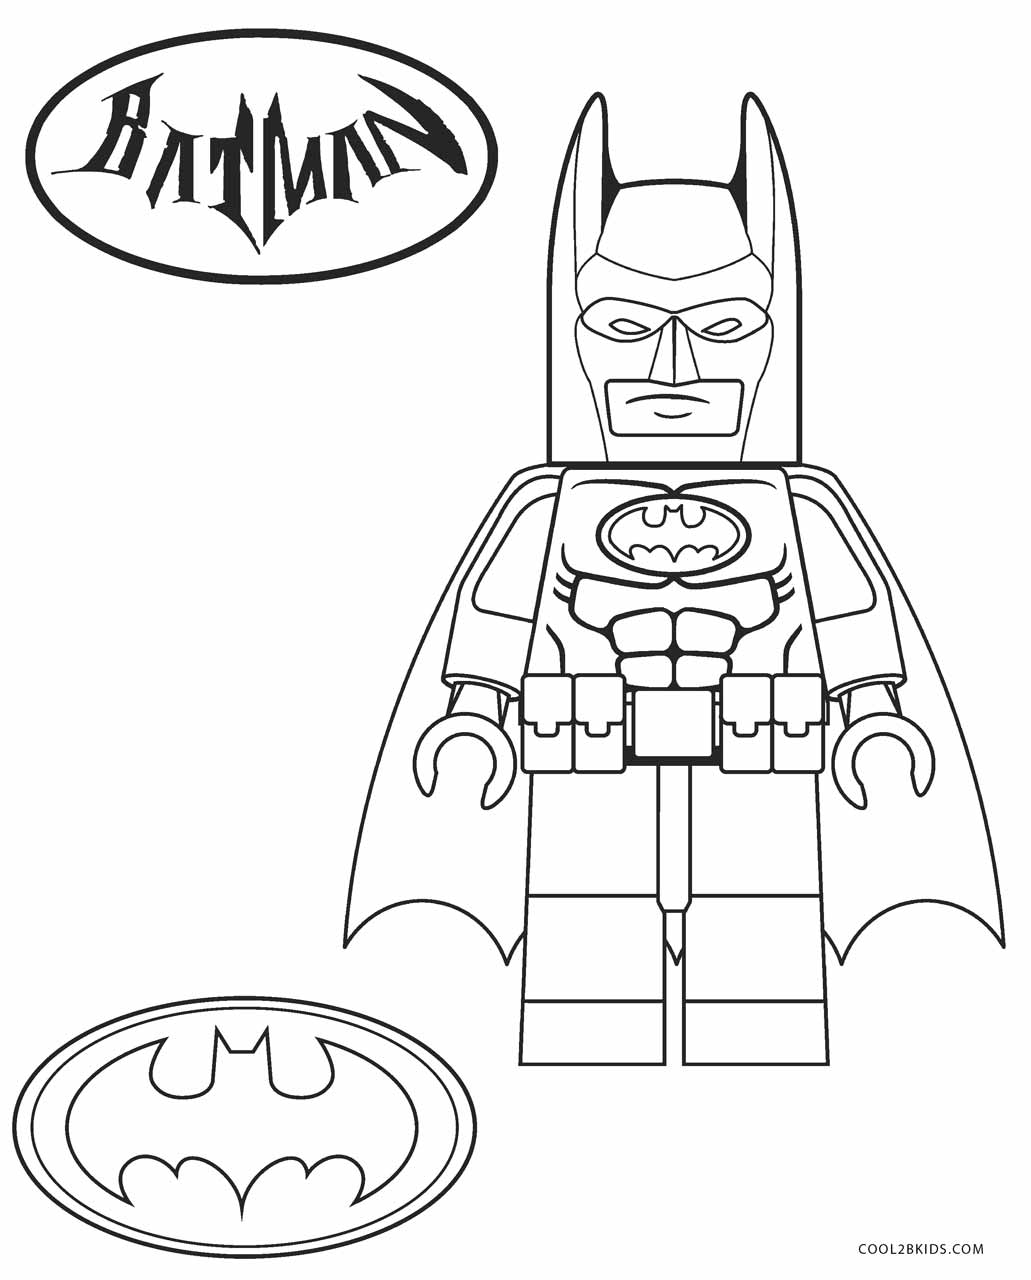 Free Printable Lego Coloring Pages For Kids | Cool2bKids